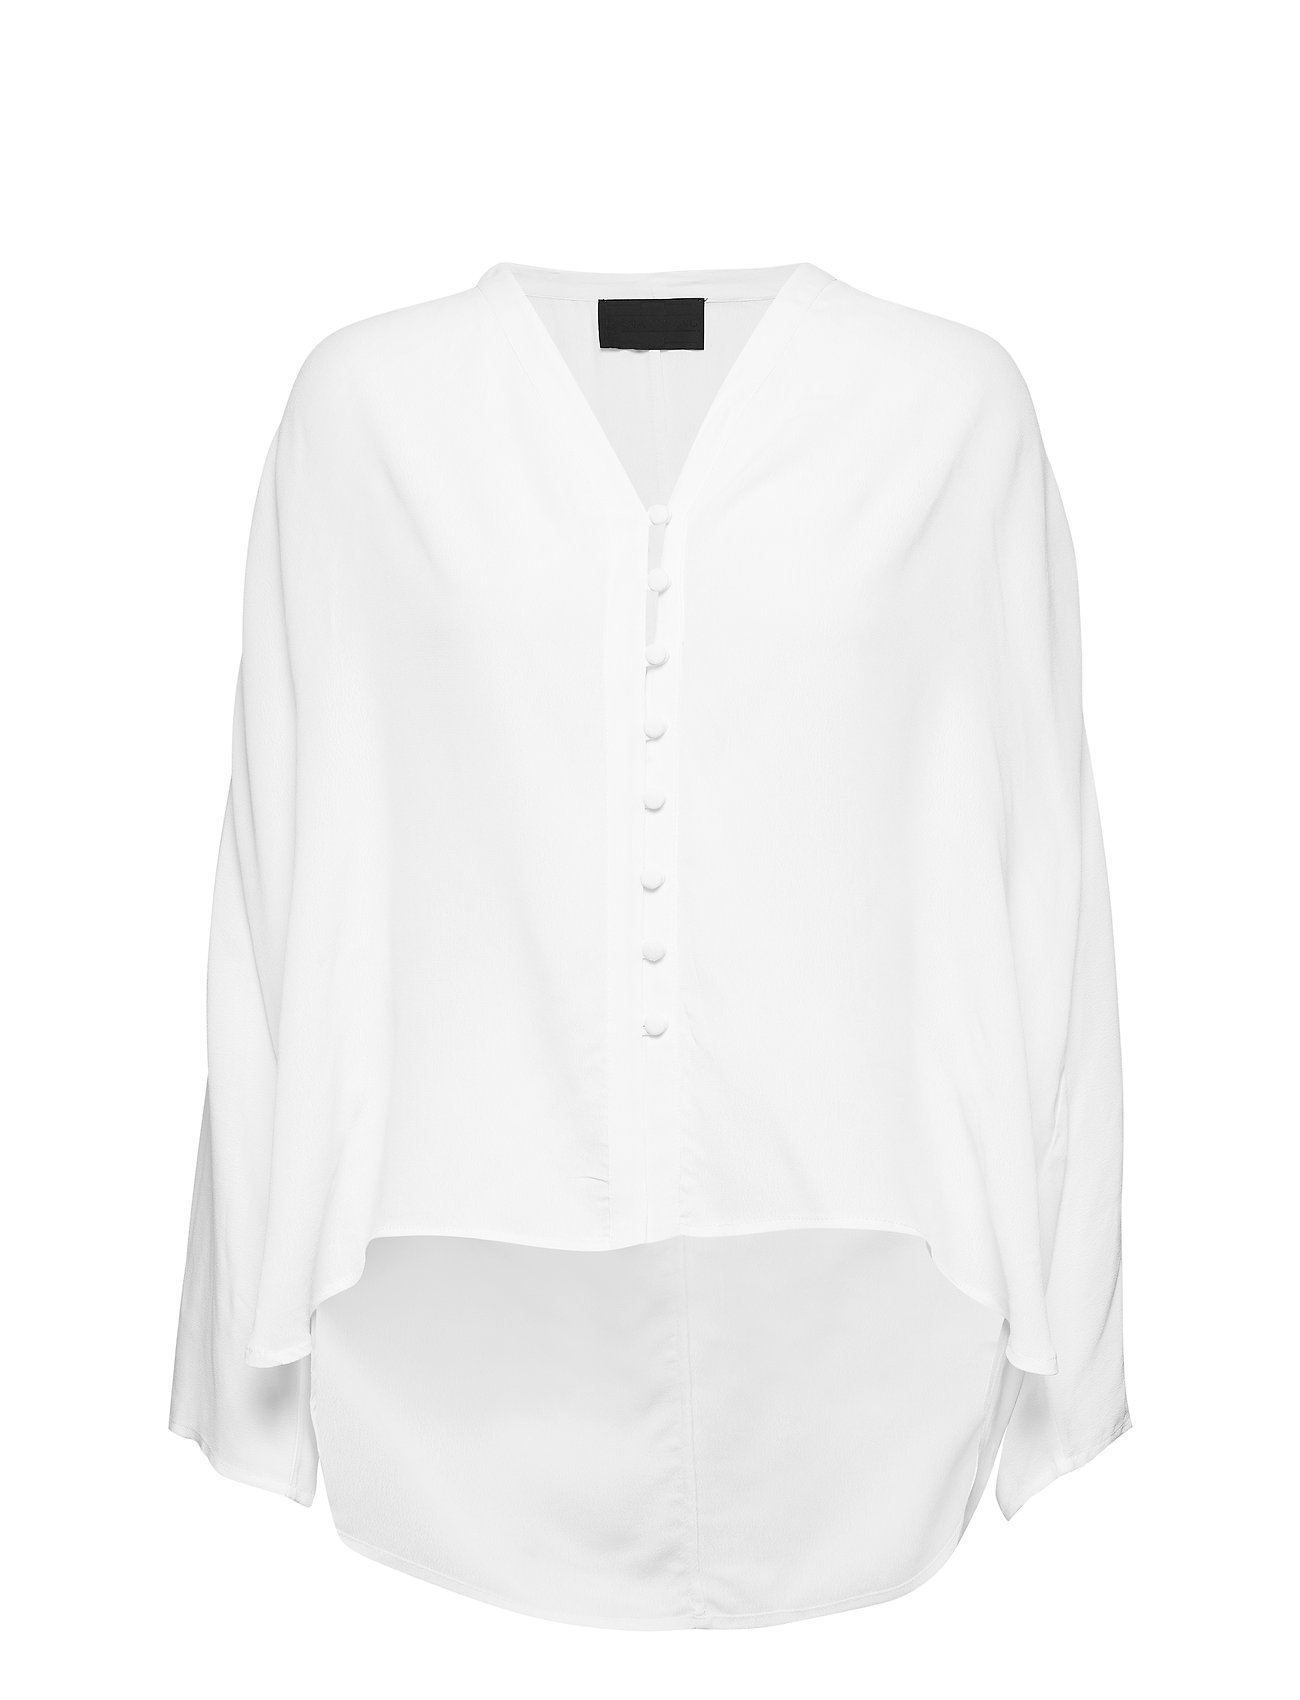 Diana Orving Buttoned Blouse - WHITE